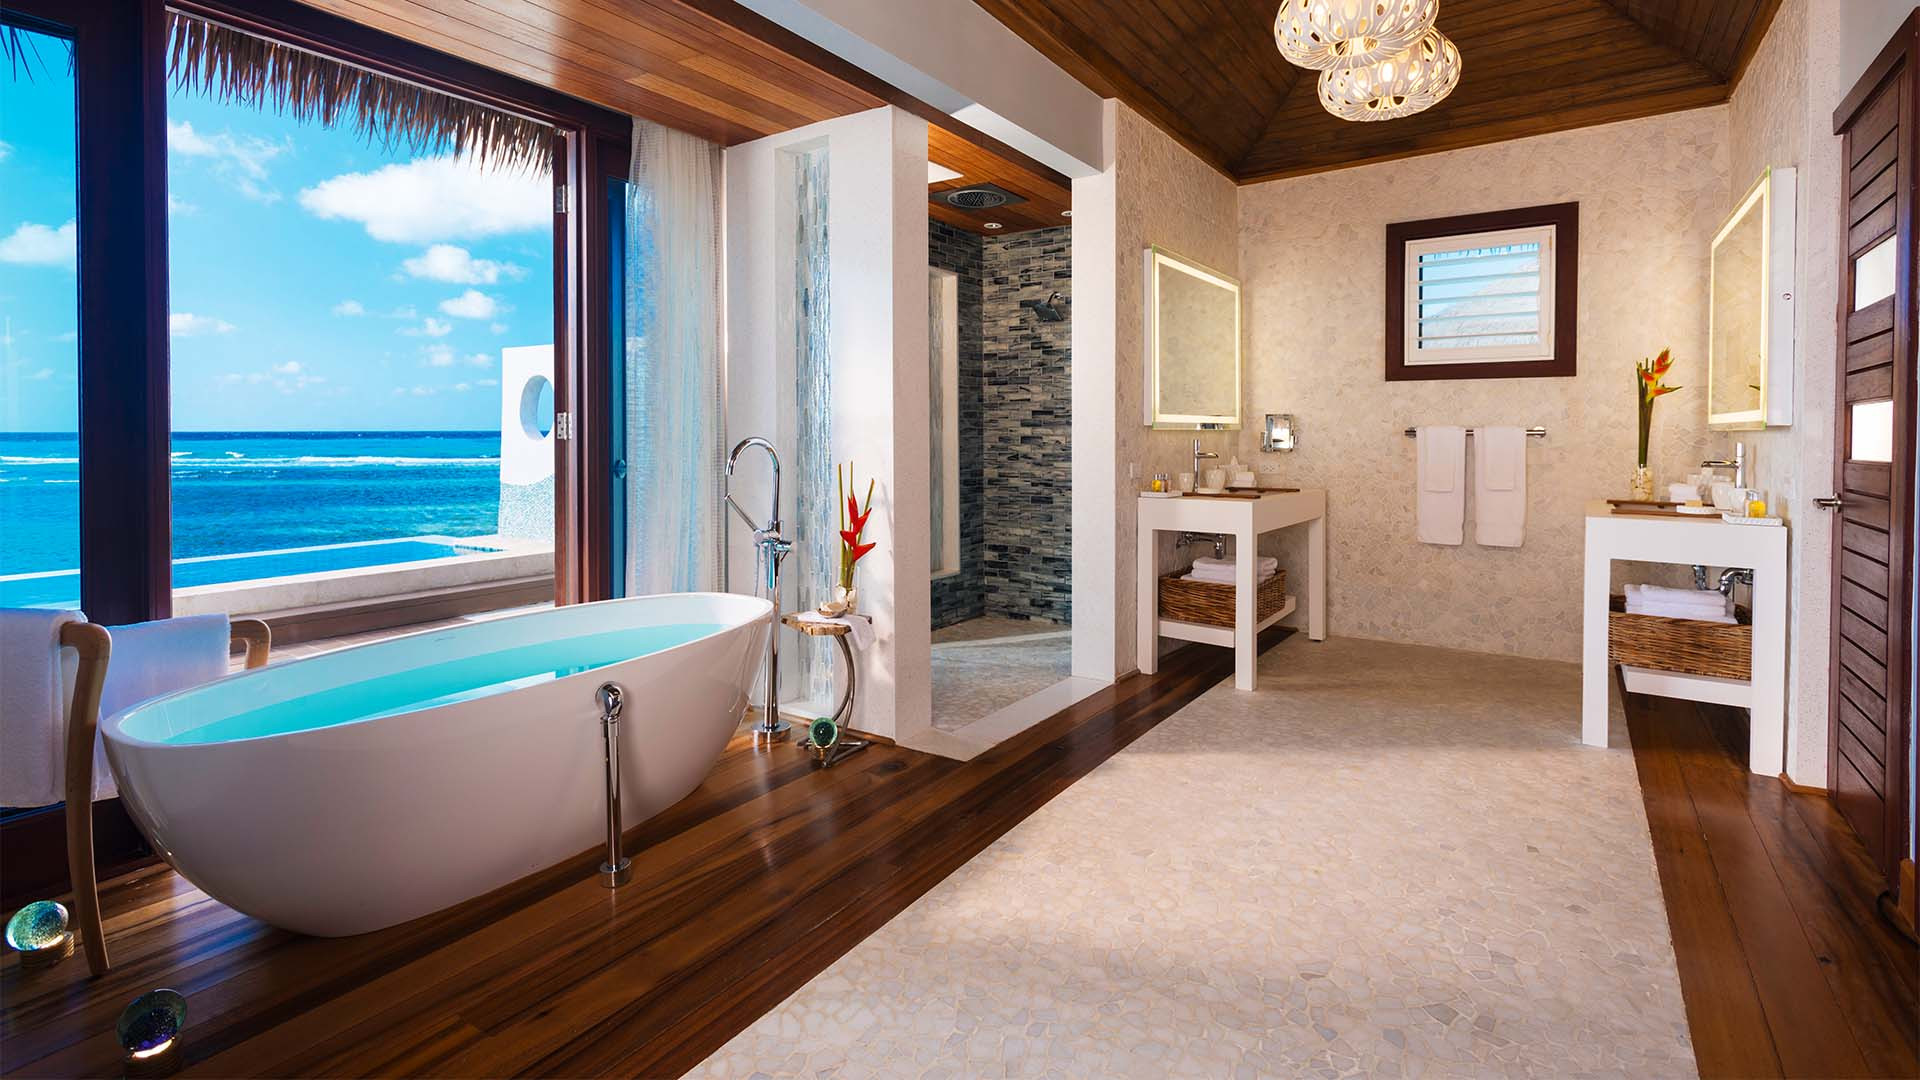 Bathroom at Sandals over the water villas